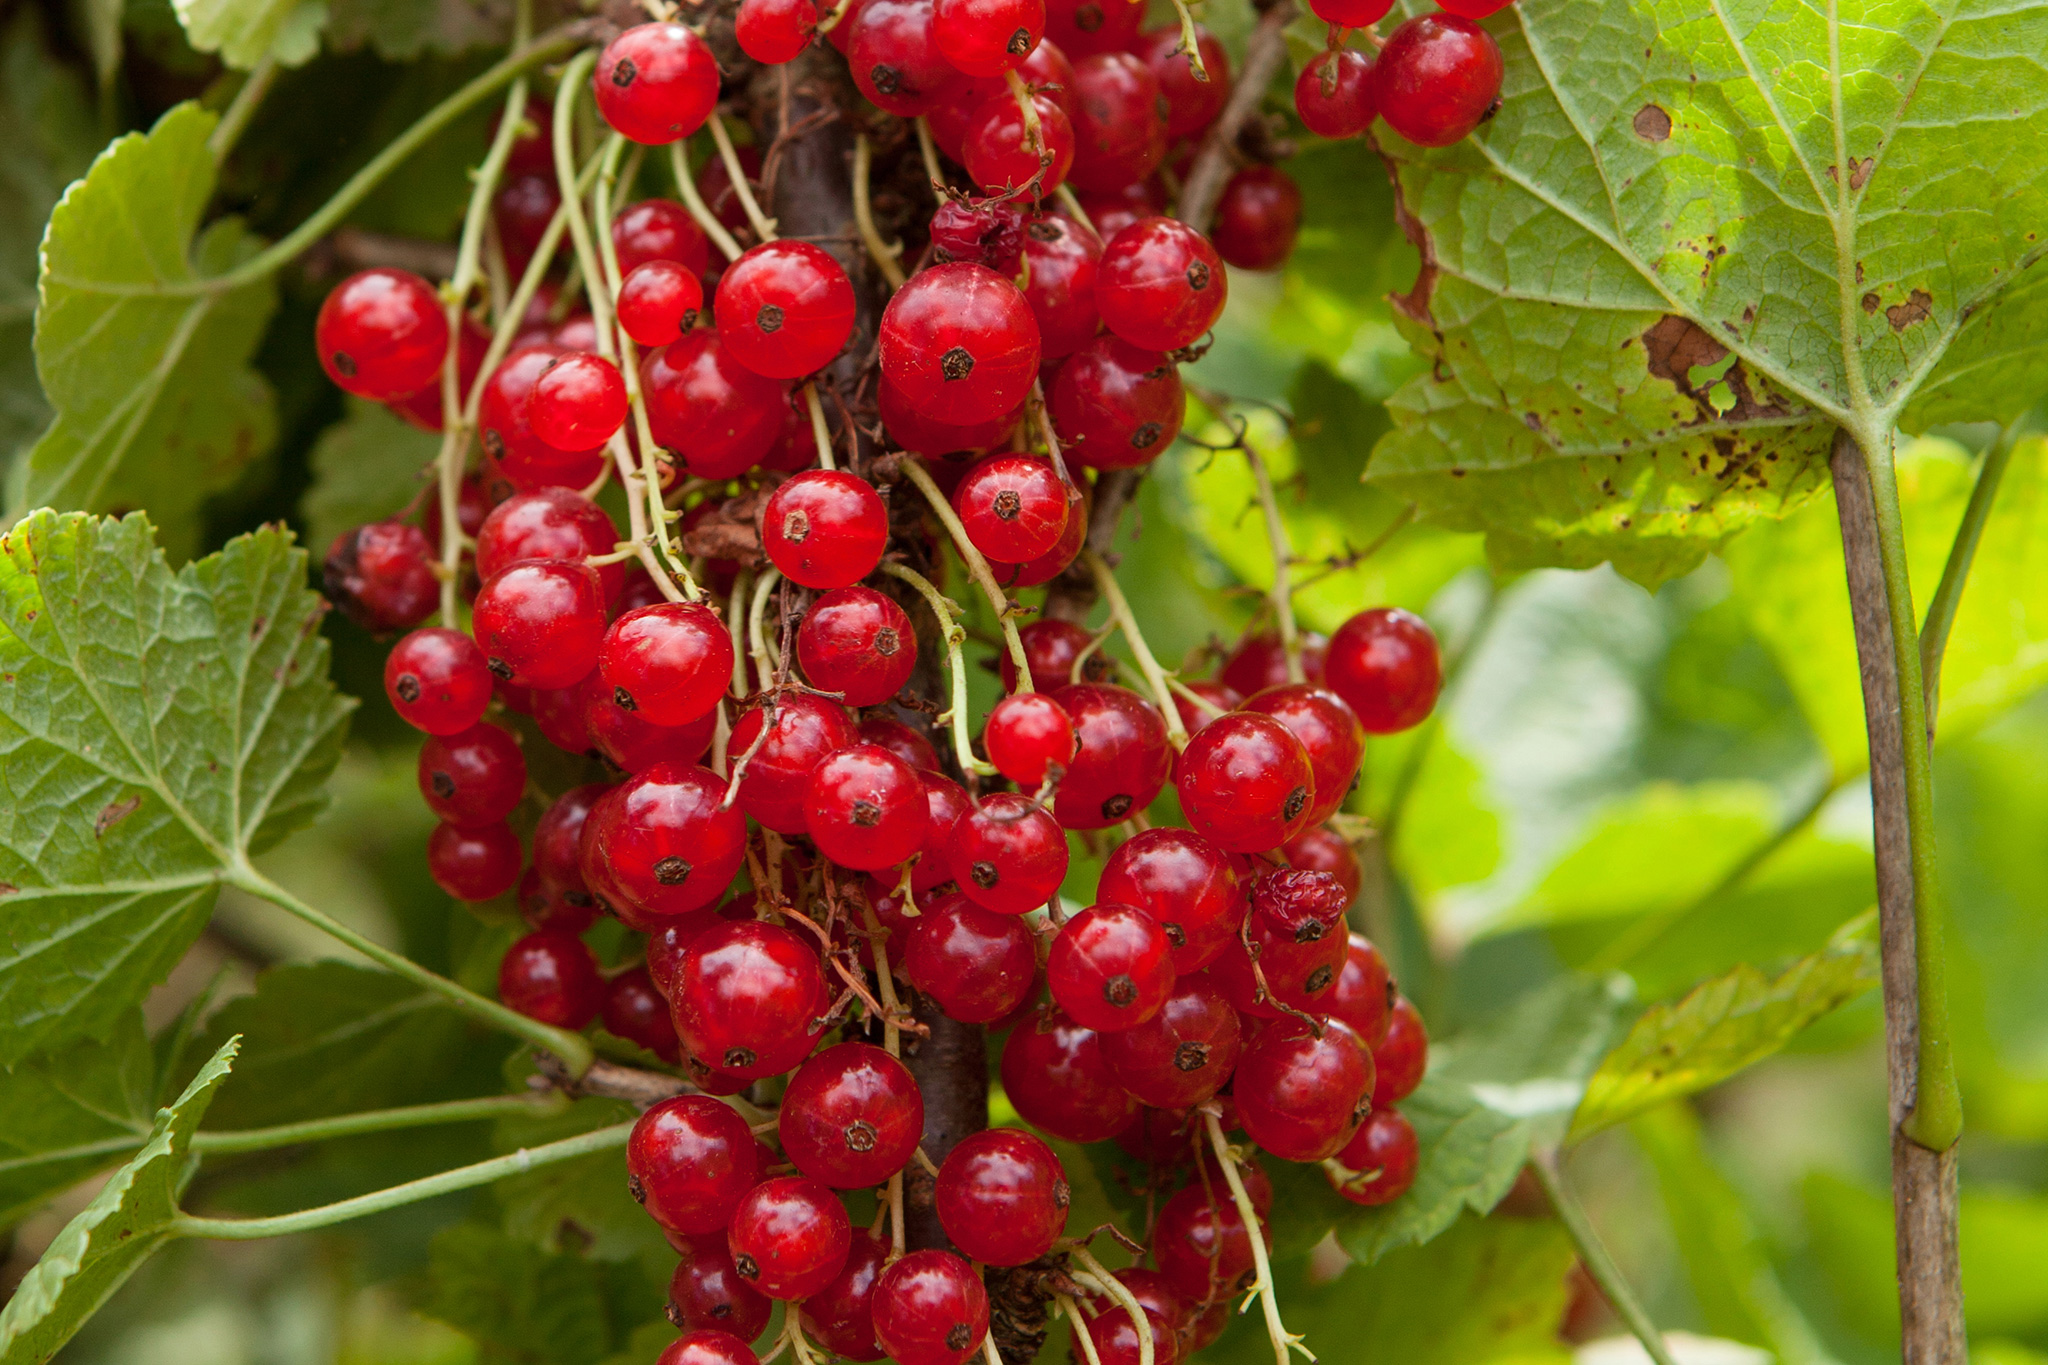 redcurrants-high-in-vitamin-c-2